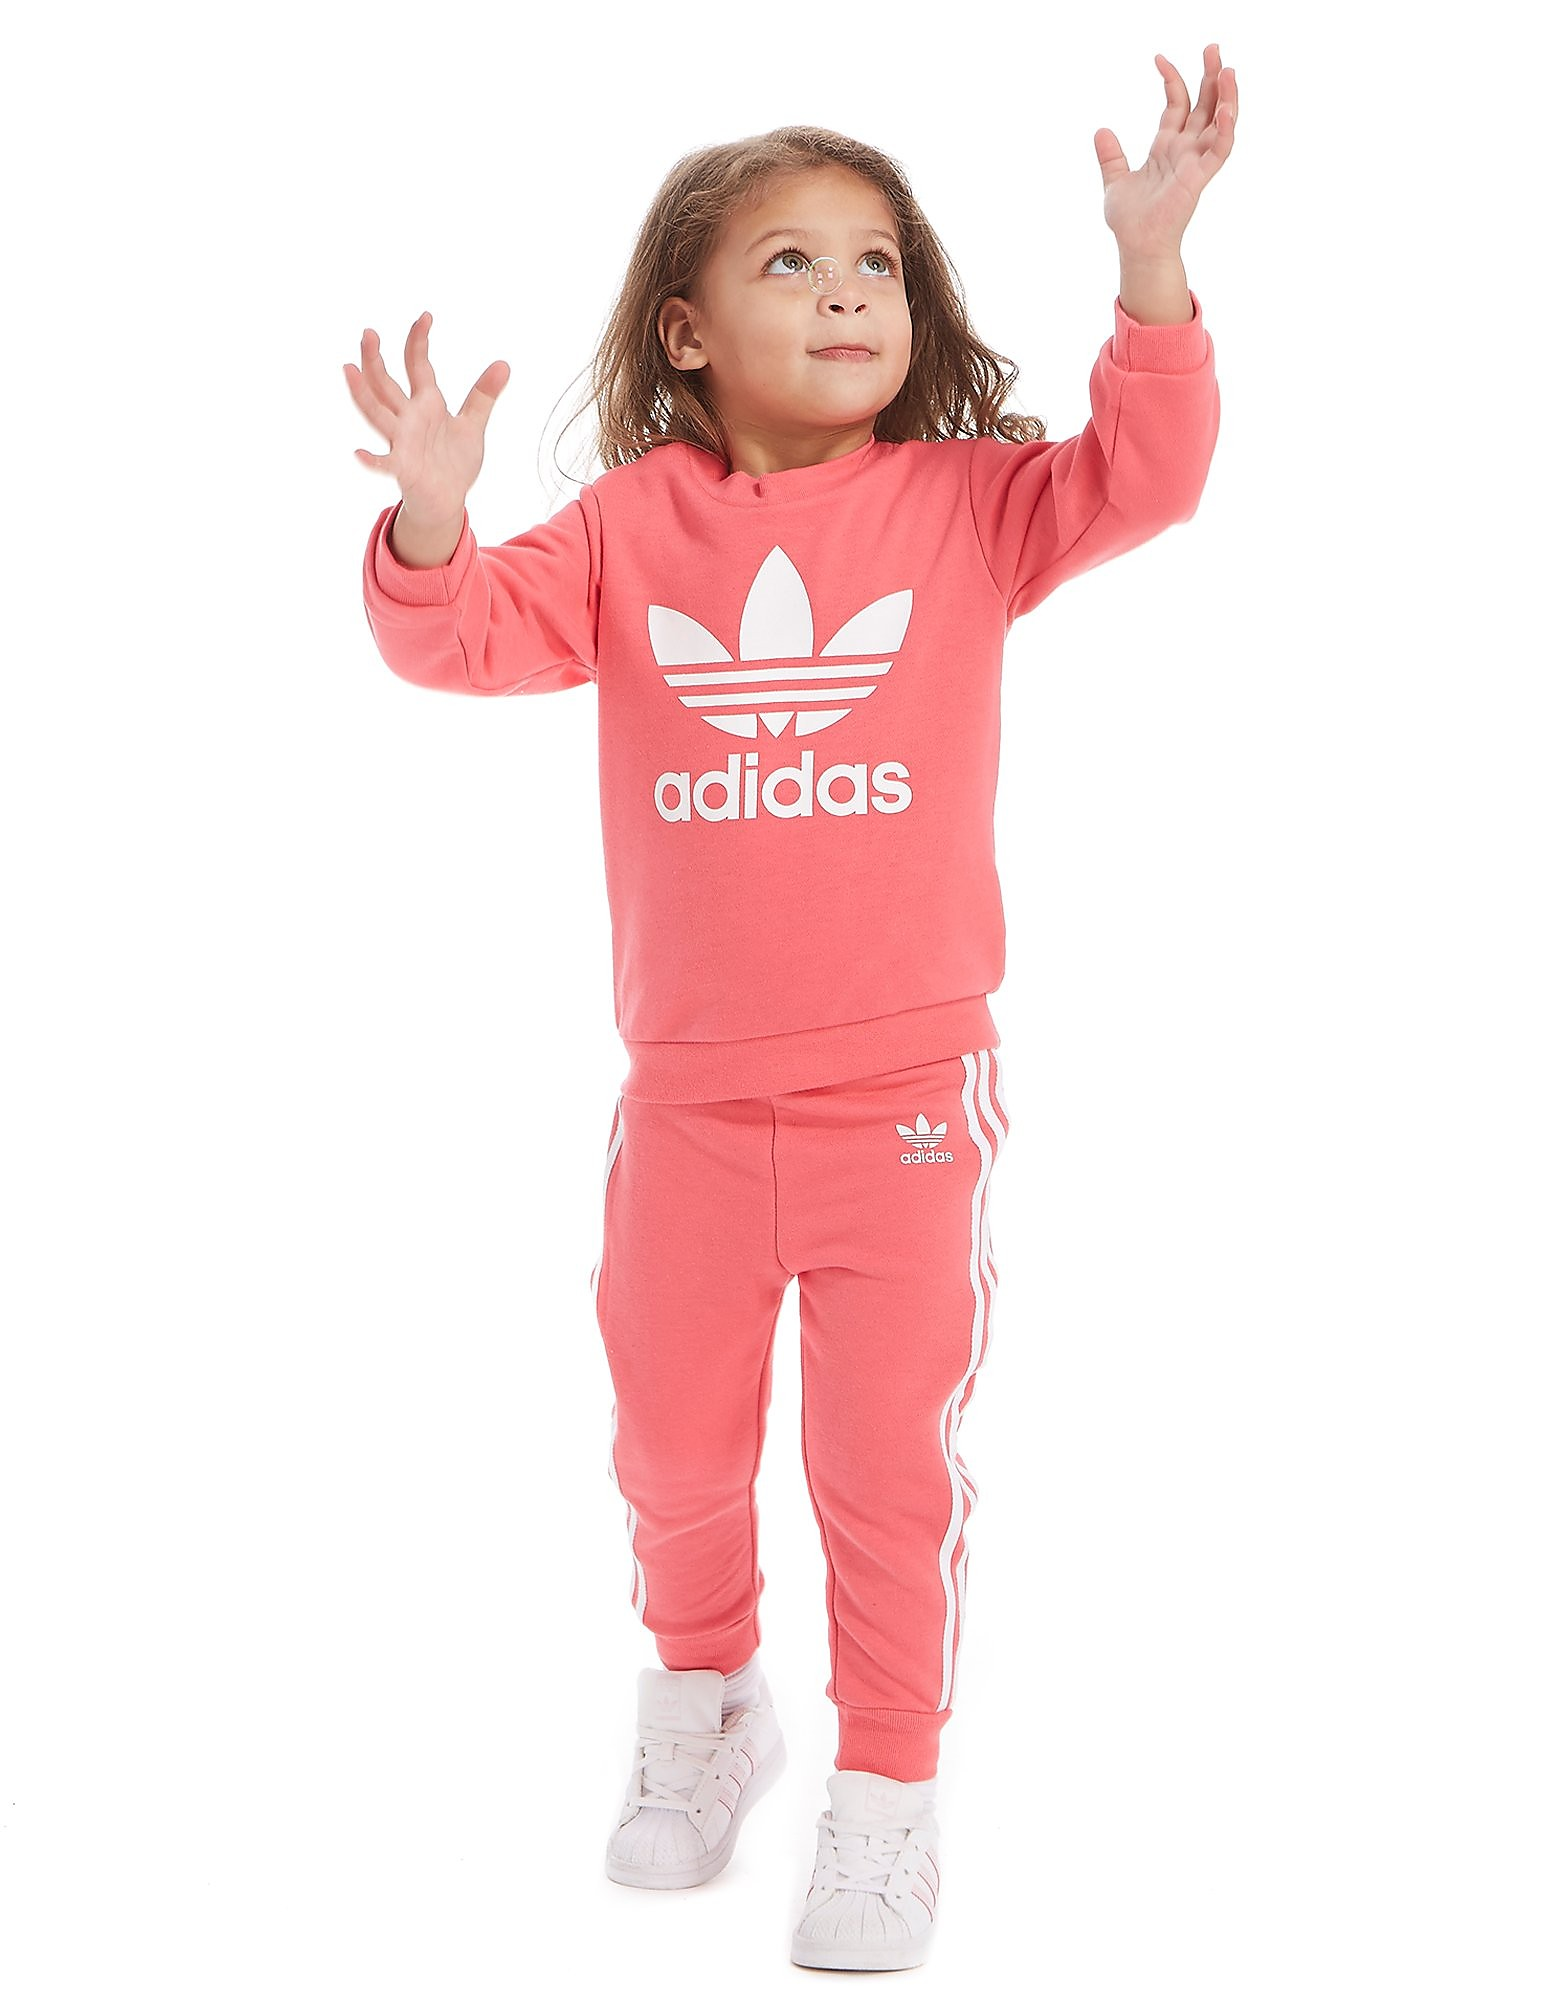 adidas Originals Girls' Adicolor Crew Suit Baby's